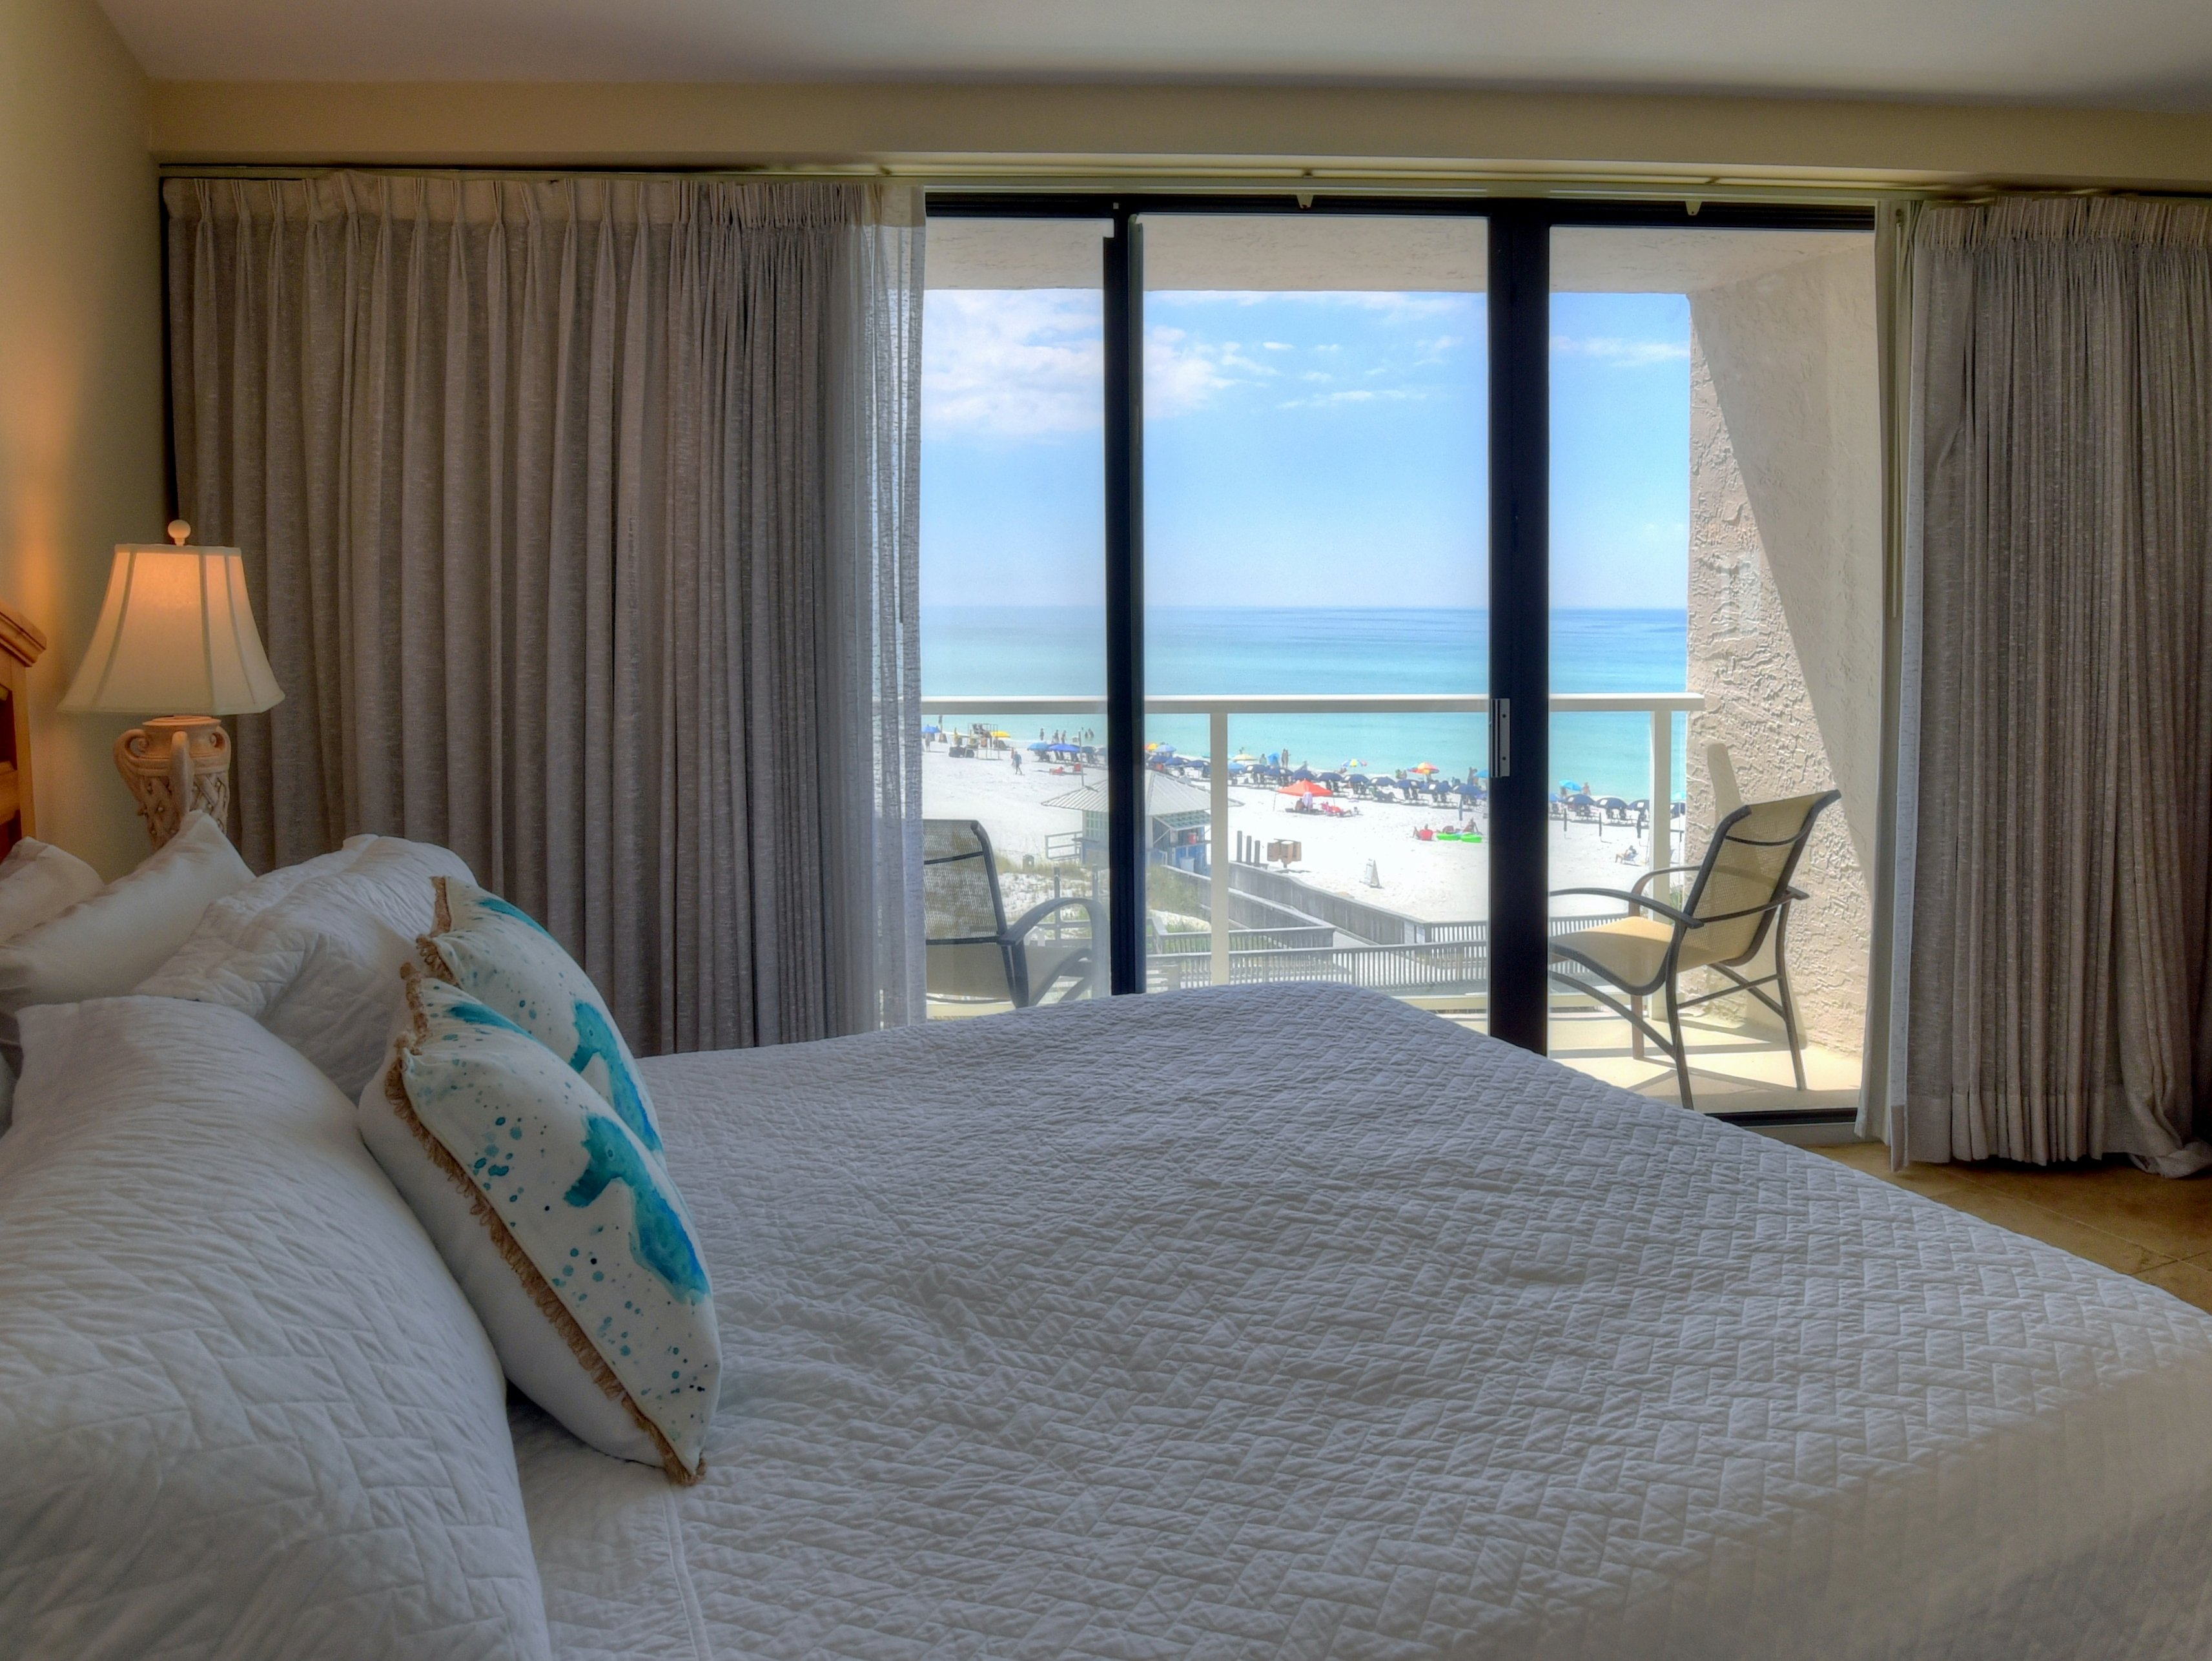 4243 Beachside Two Condo rental in Beachside Towers at Sandestin in Destin Florida - #13